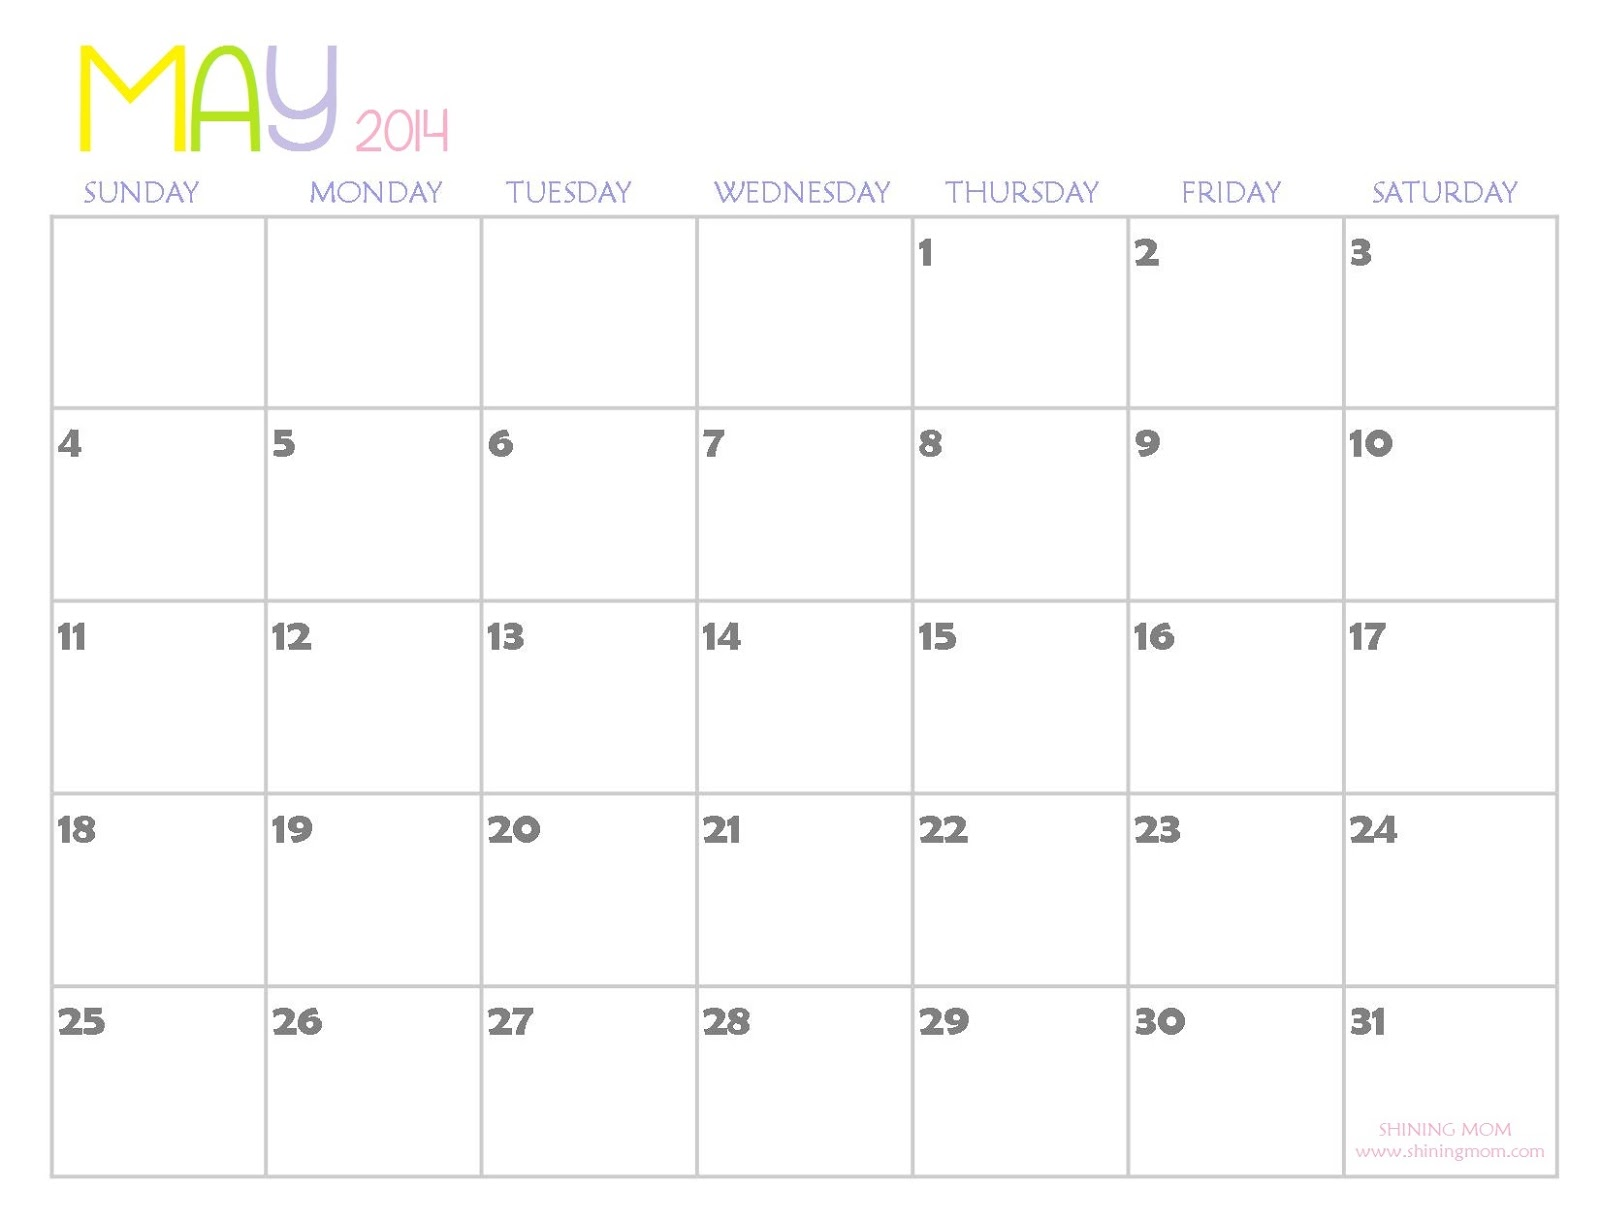 October 2014 Calendar With Holidays Printable ...